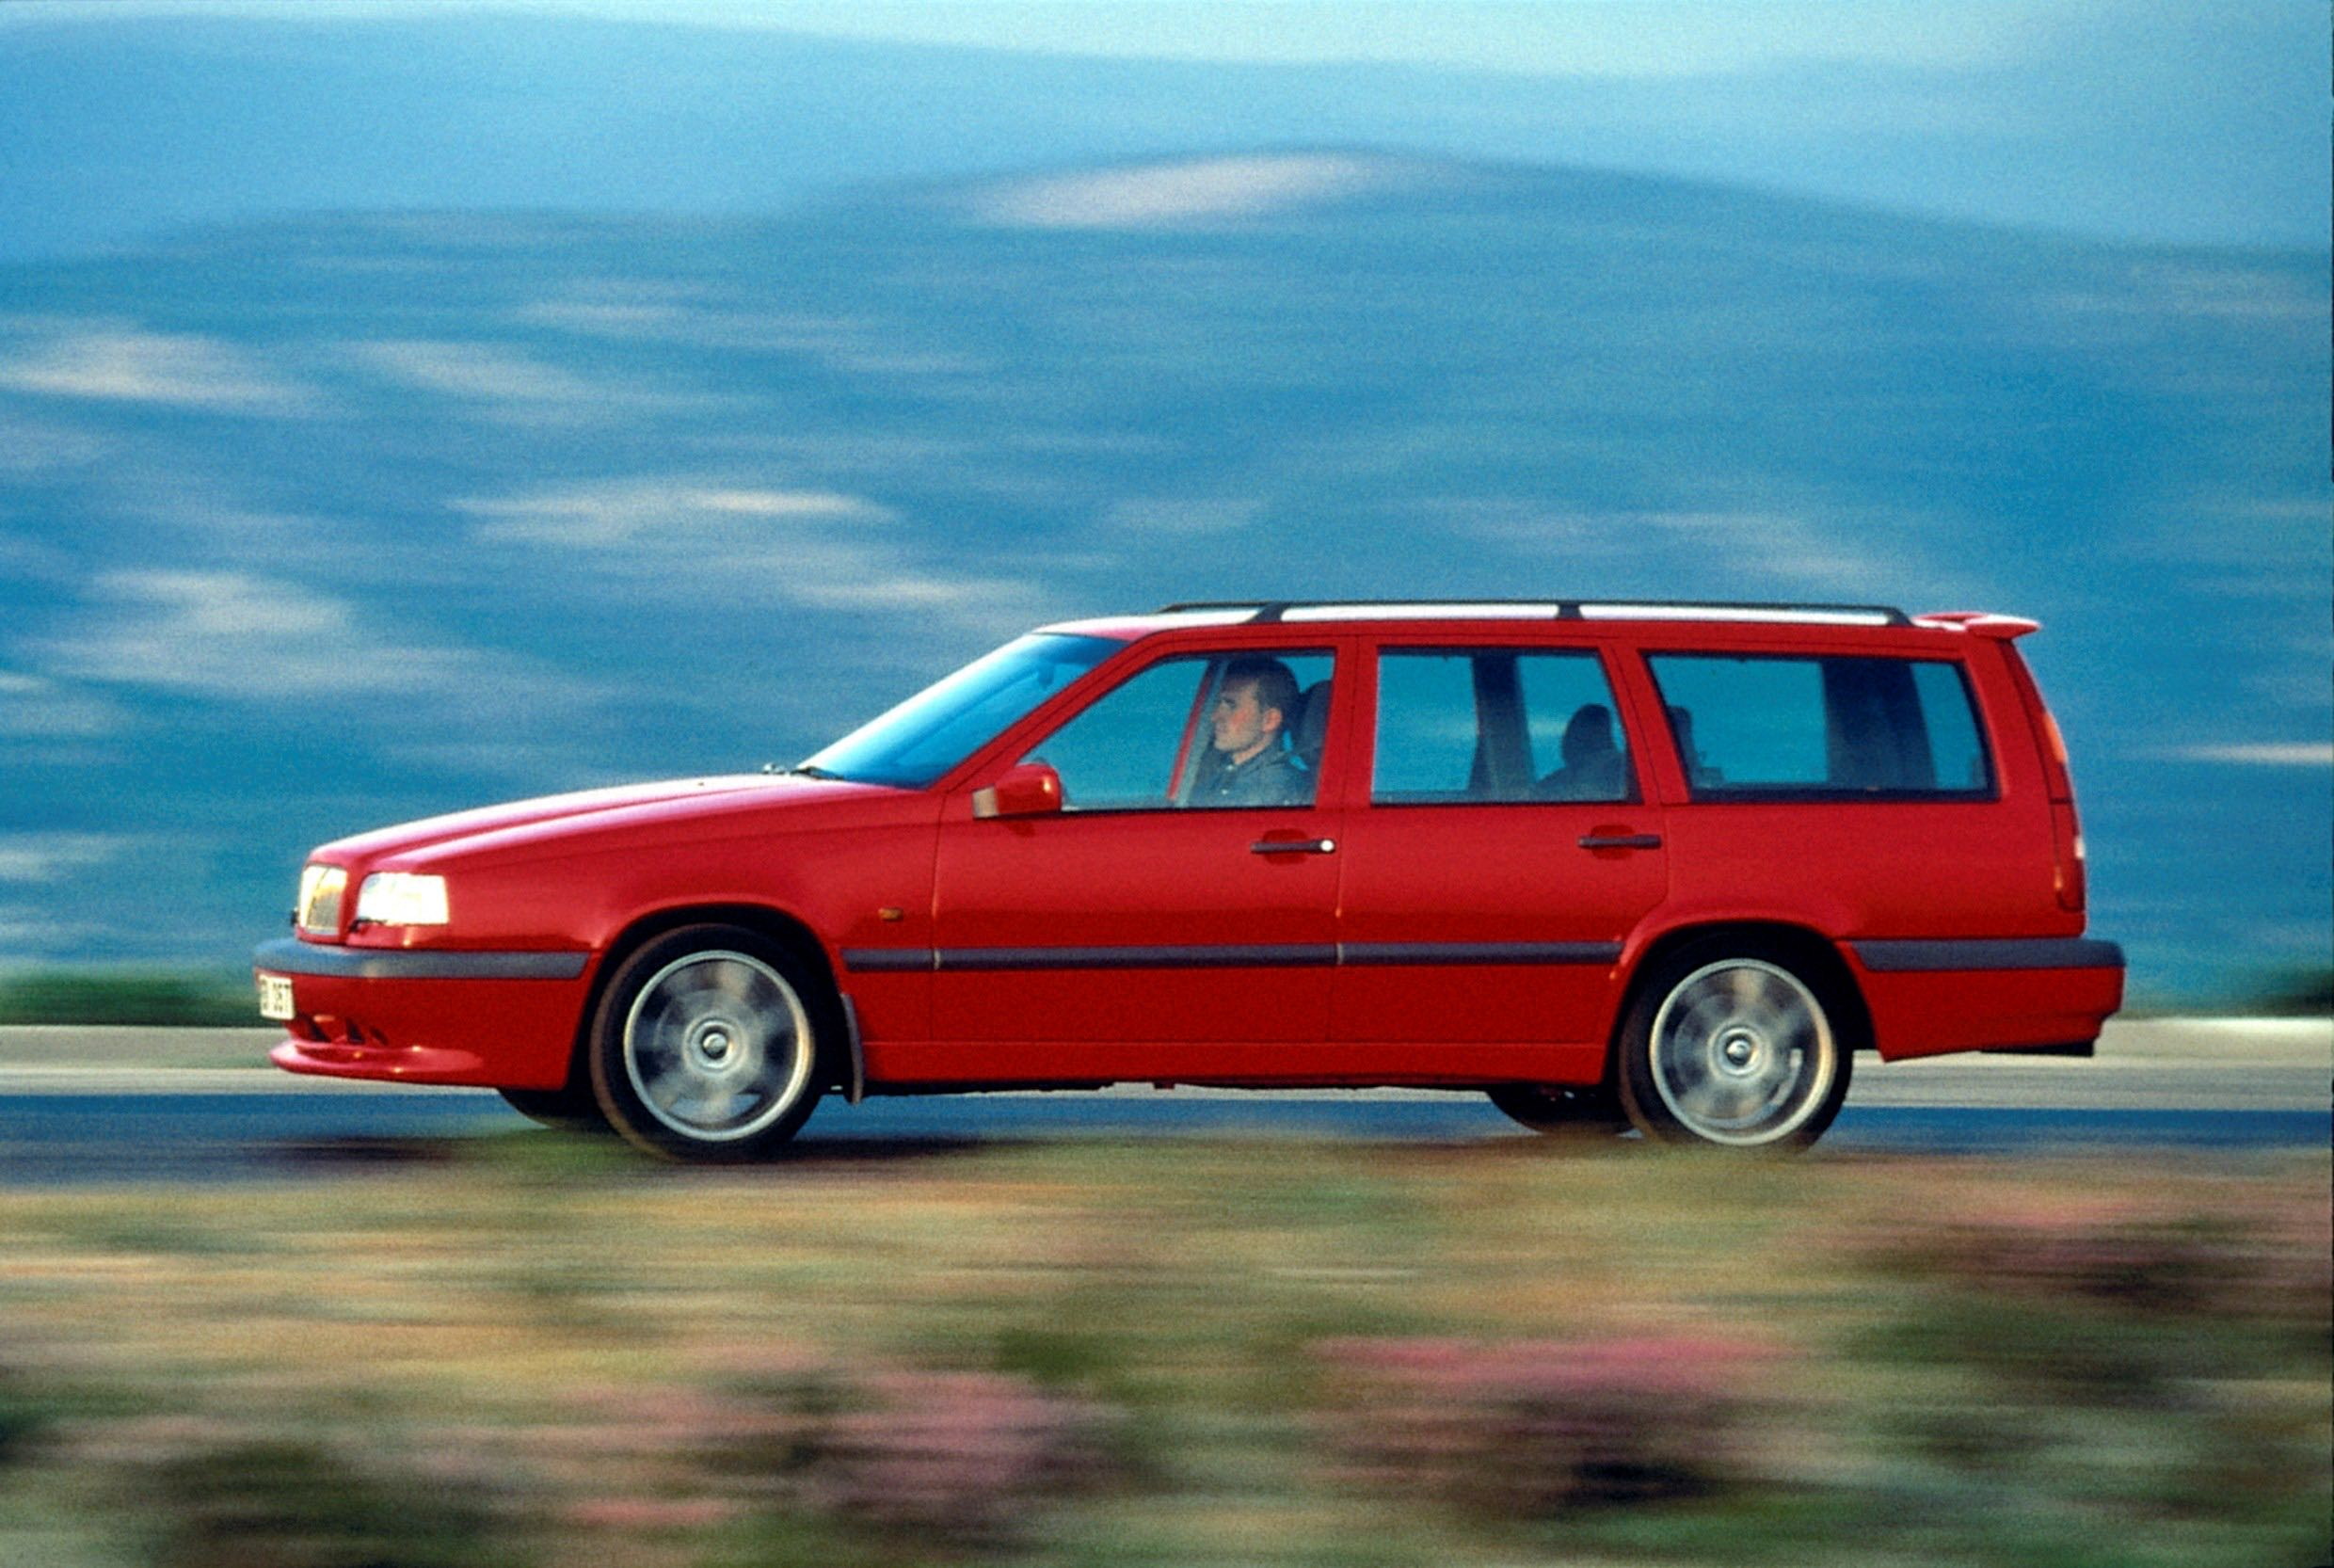 Volvo 850 -  850, 850 wagon, 1996, Exterior, Historical, Images